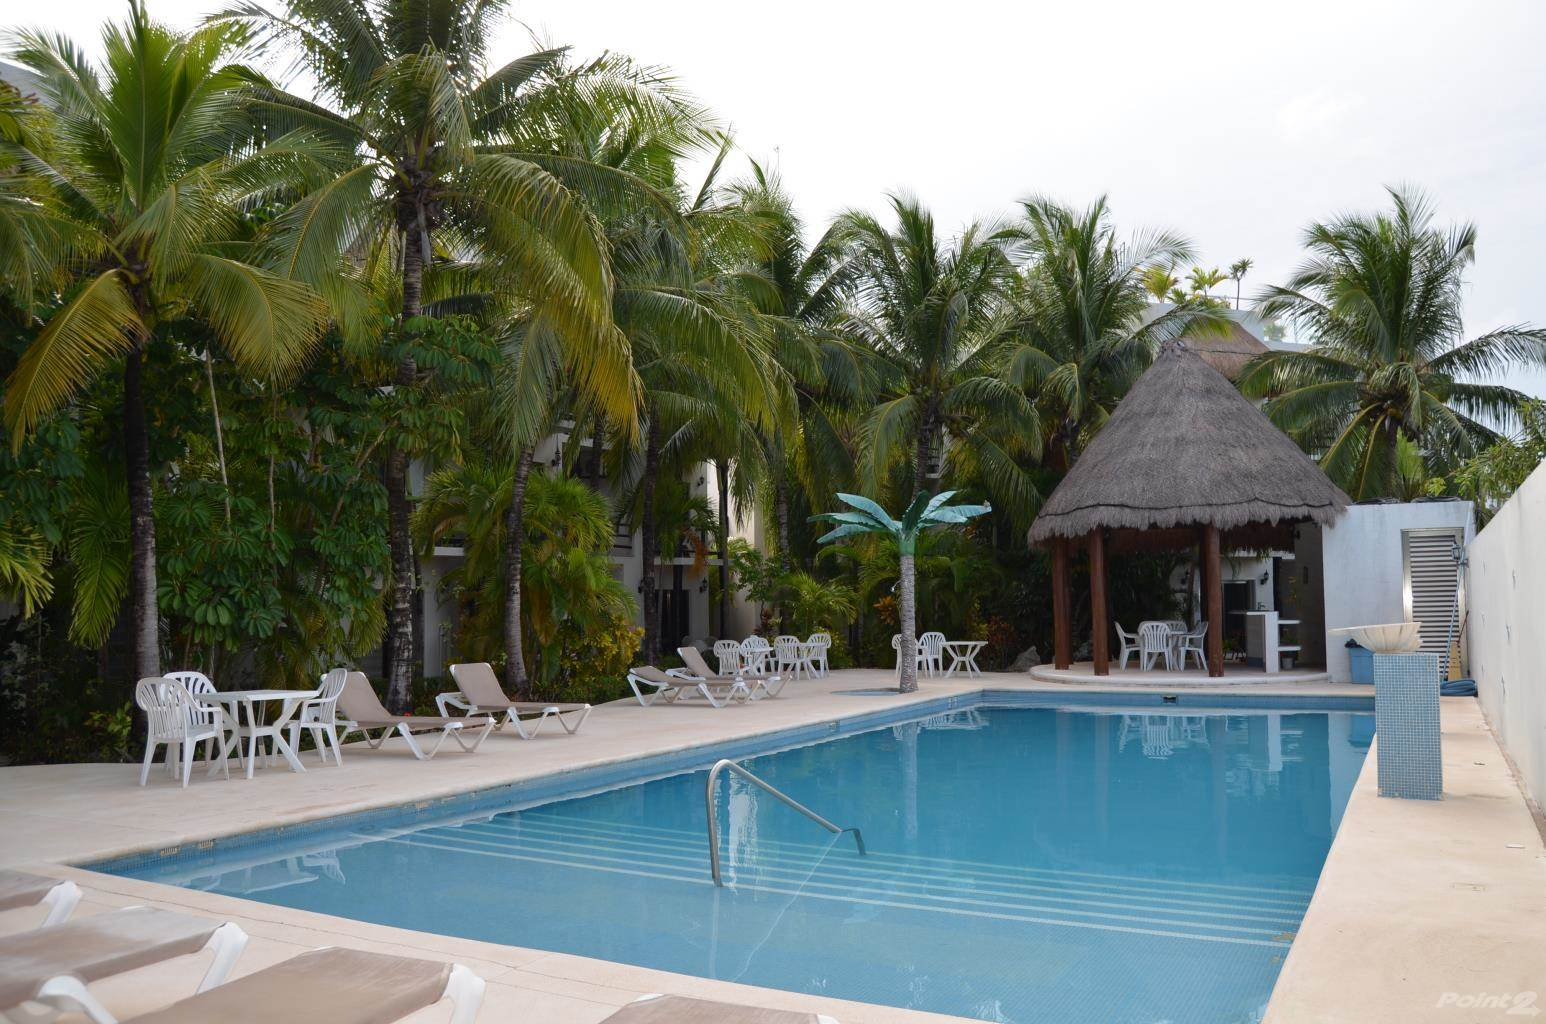 Residential For Rent in Studio for rent fusrnished pool steps from the beach Playa del Carmen P2994, Playa del Carmen, Quintana Roo ,77710  , Mexico